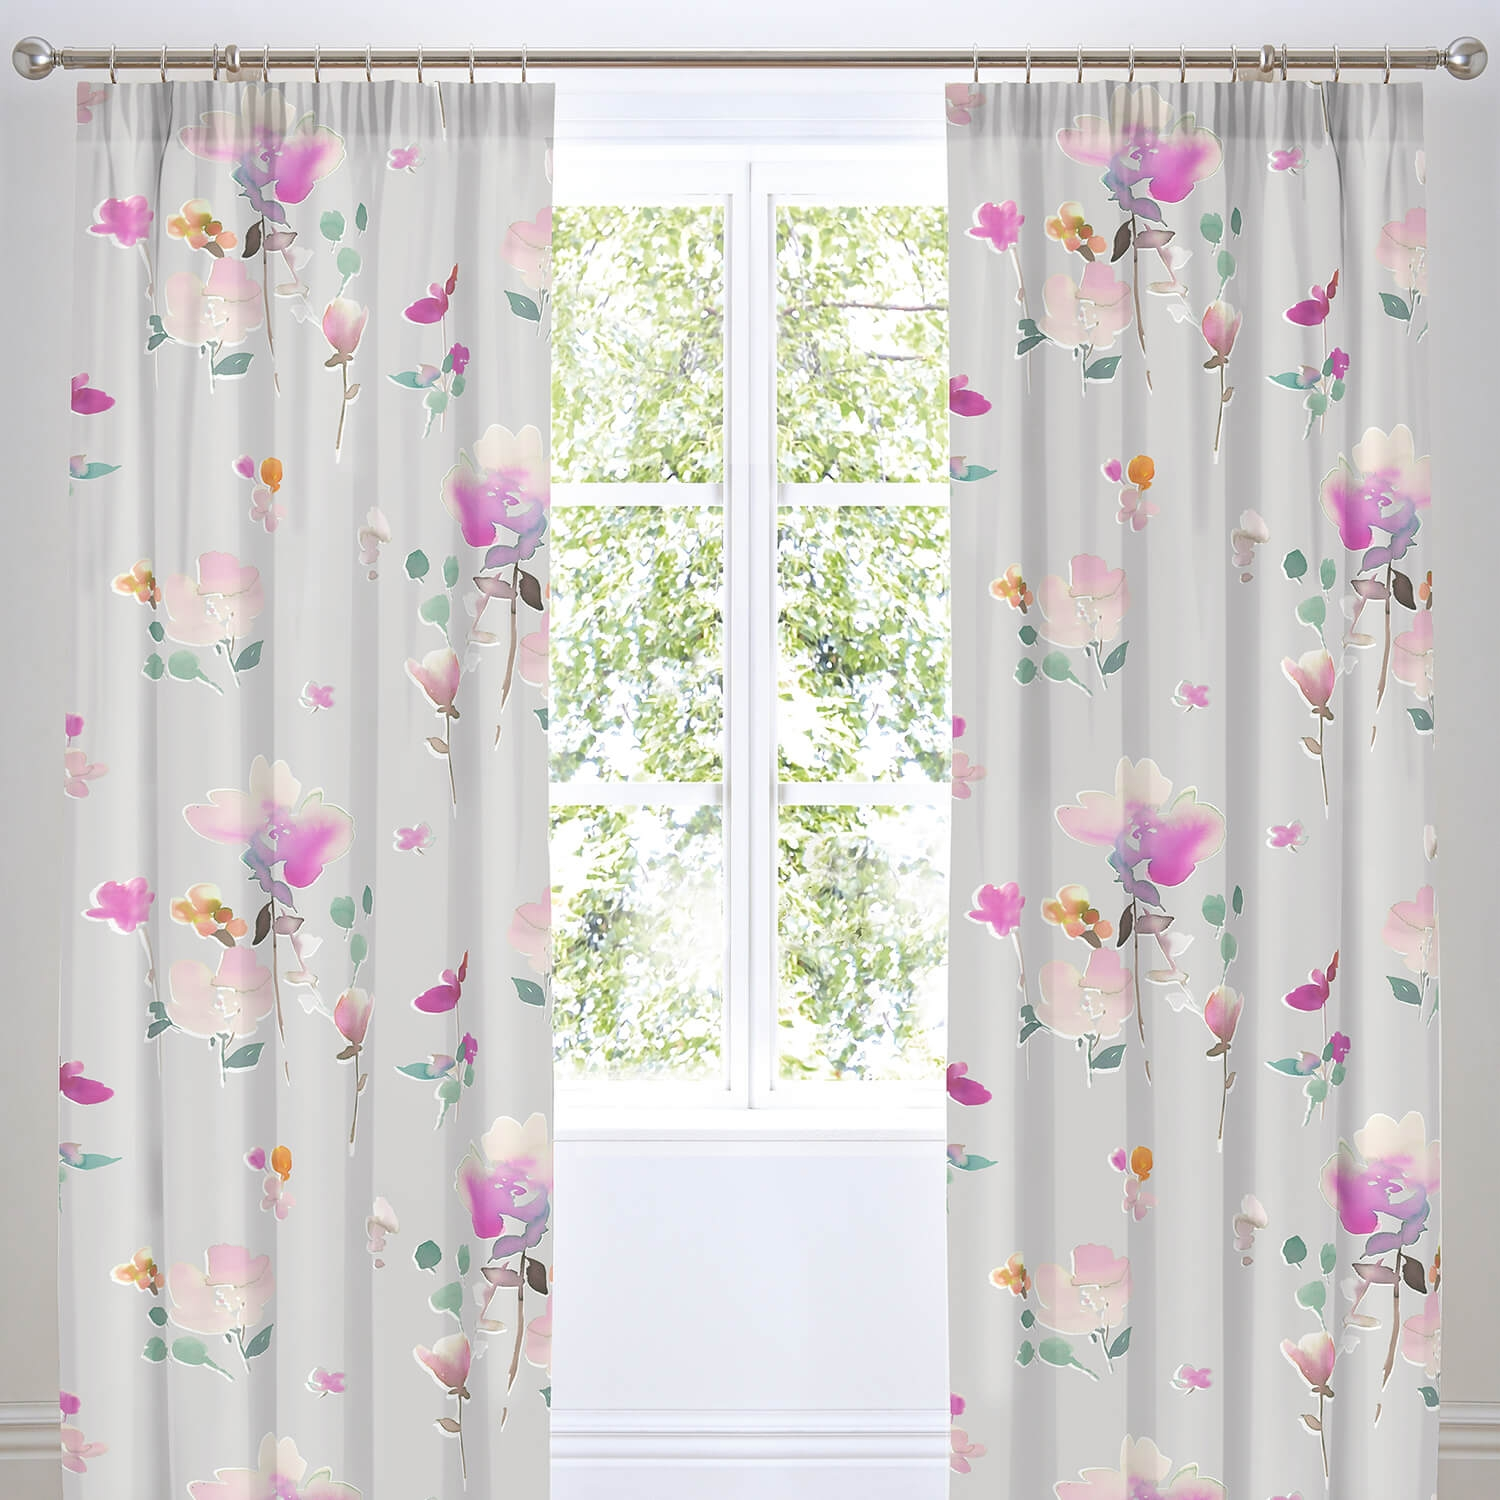 Image of Dreams & Drapes Jessica Ready Made Curtains, 183 x 168 cm, Pink